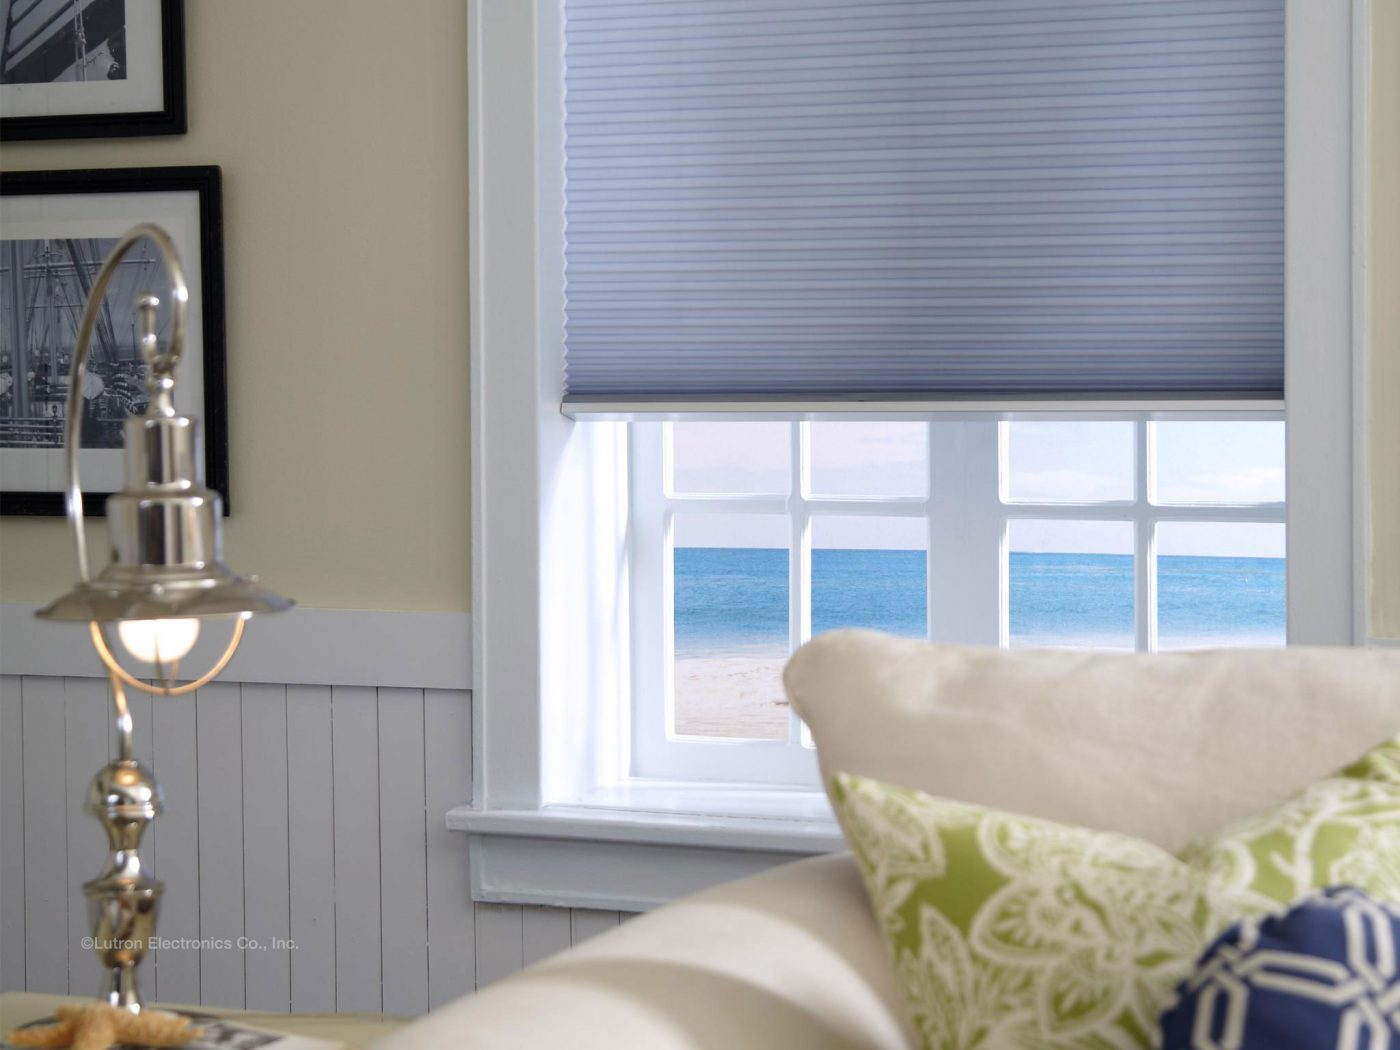 Electric Blinds - Honeycomb - The Electric Blind Company